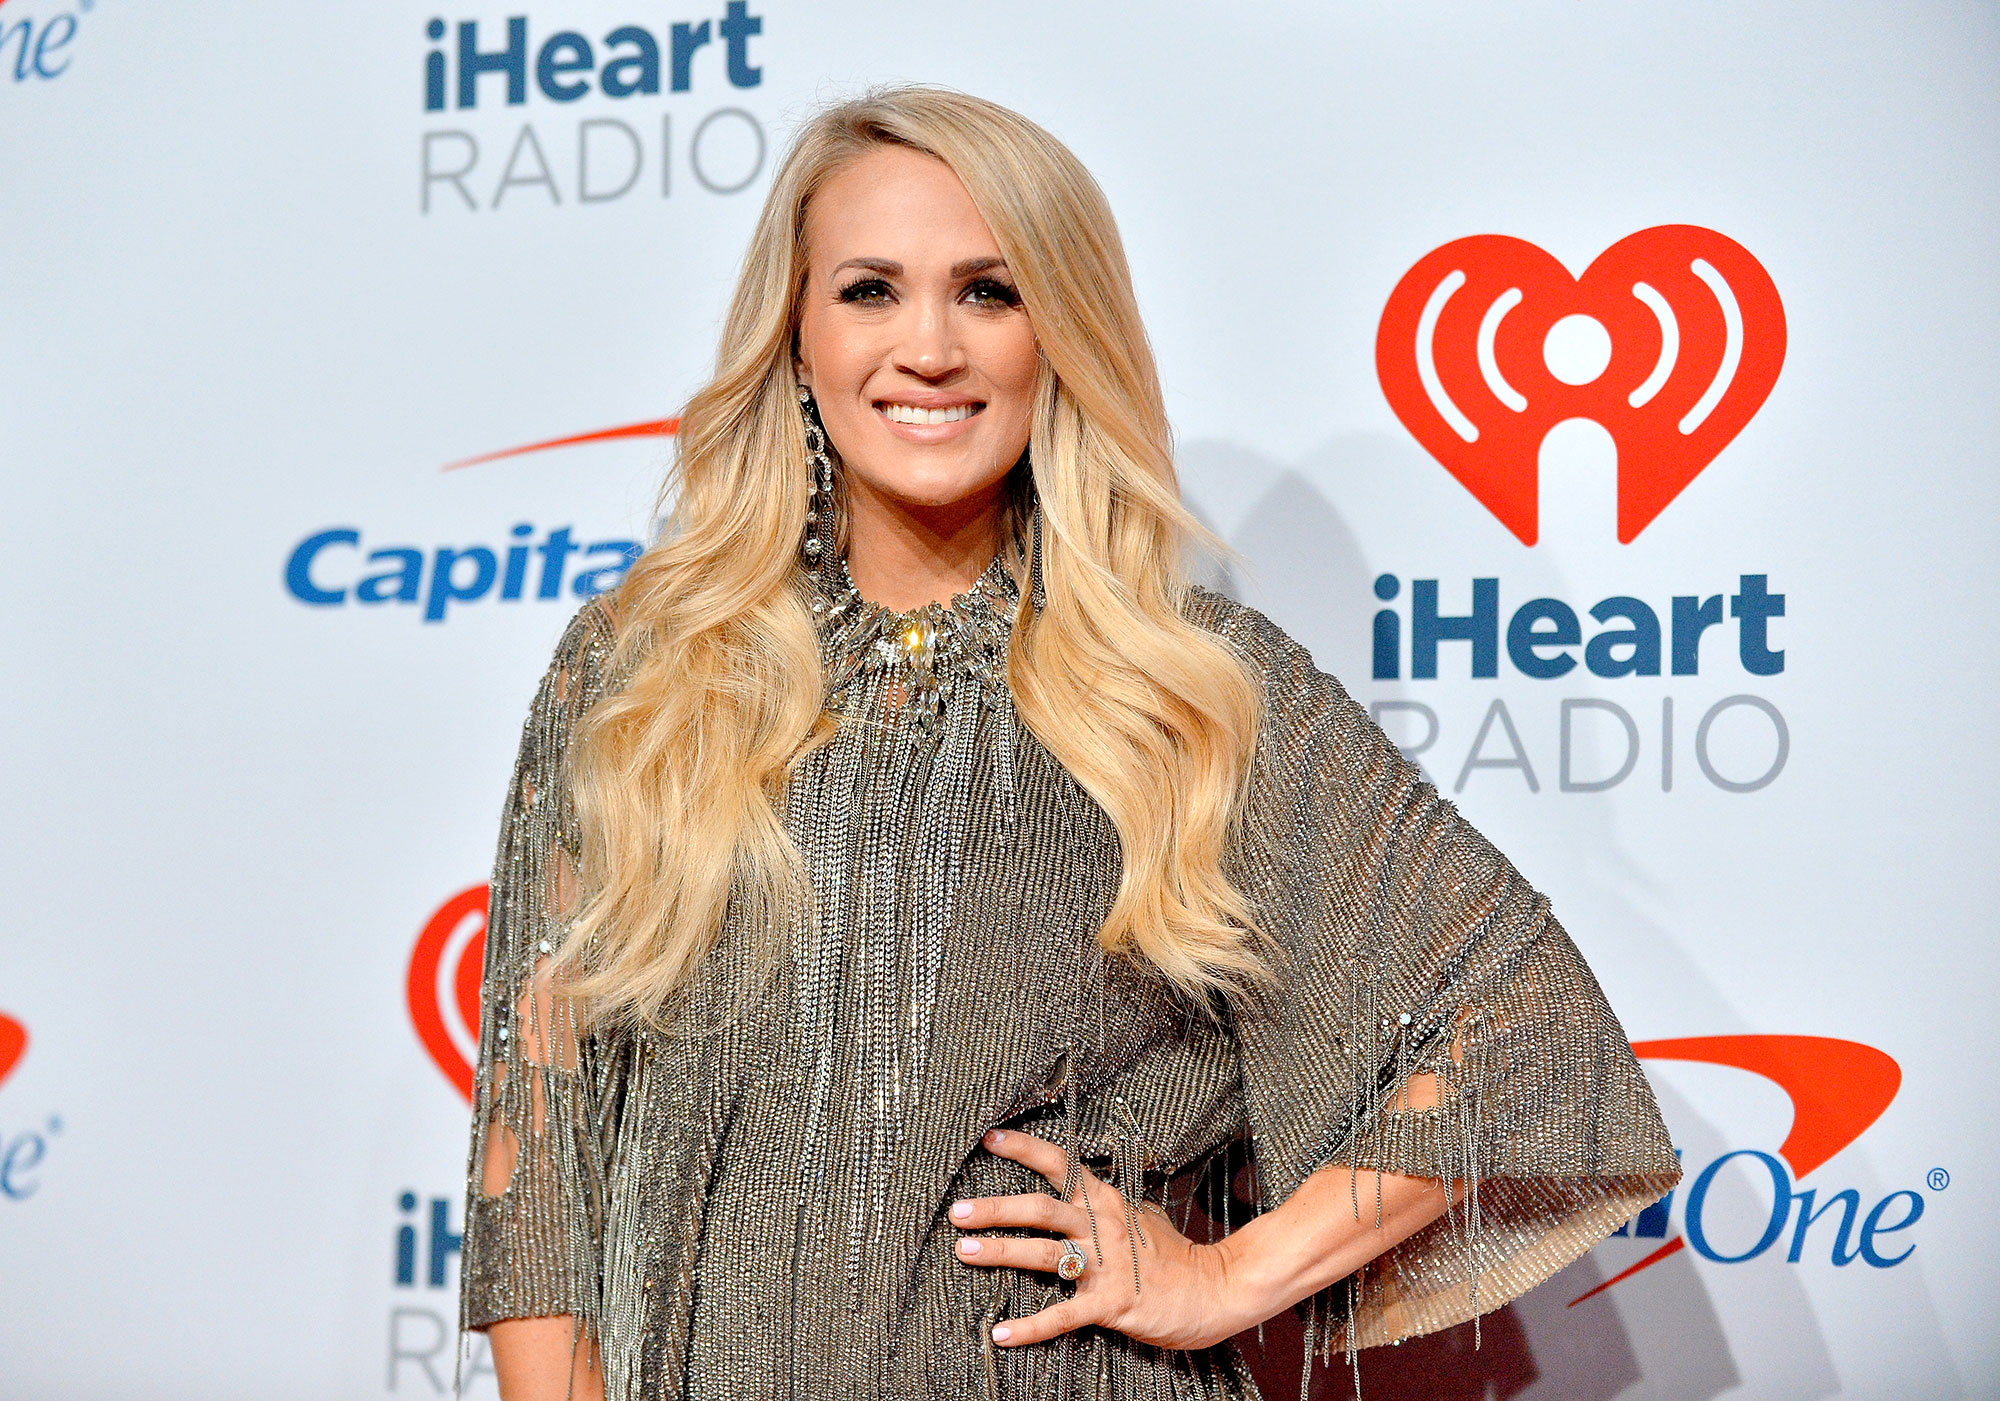 Carrie Underwood's Son Calls Her 'Carefree Underwear' - Carrie Underwood attends the iHeartRadio Music Festival at T-Mobile Arena on September 22, 2018 in Las Vegas, Nevada.